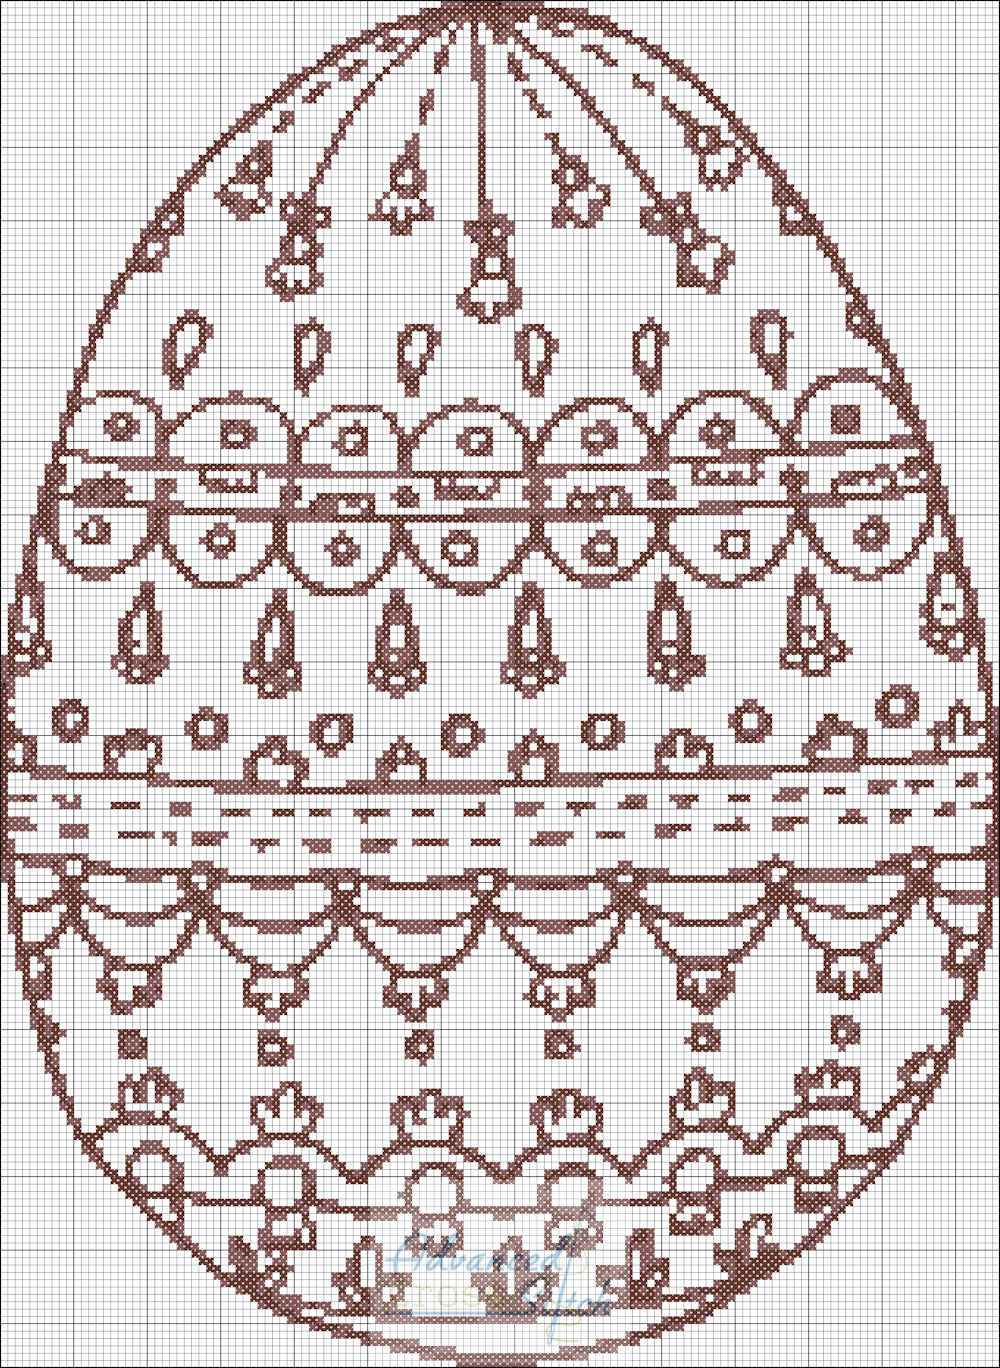 Coloring Egg Cross Stitch Chart